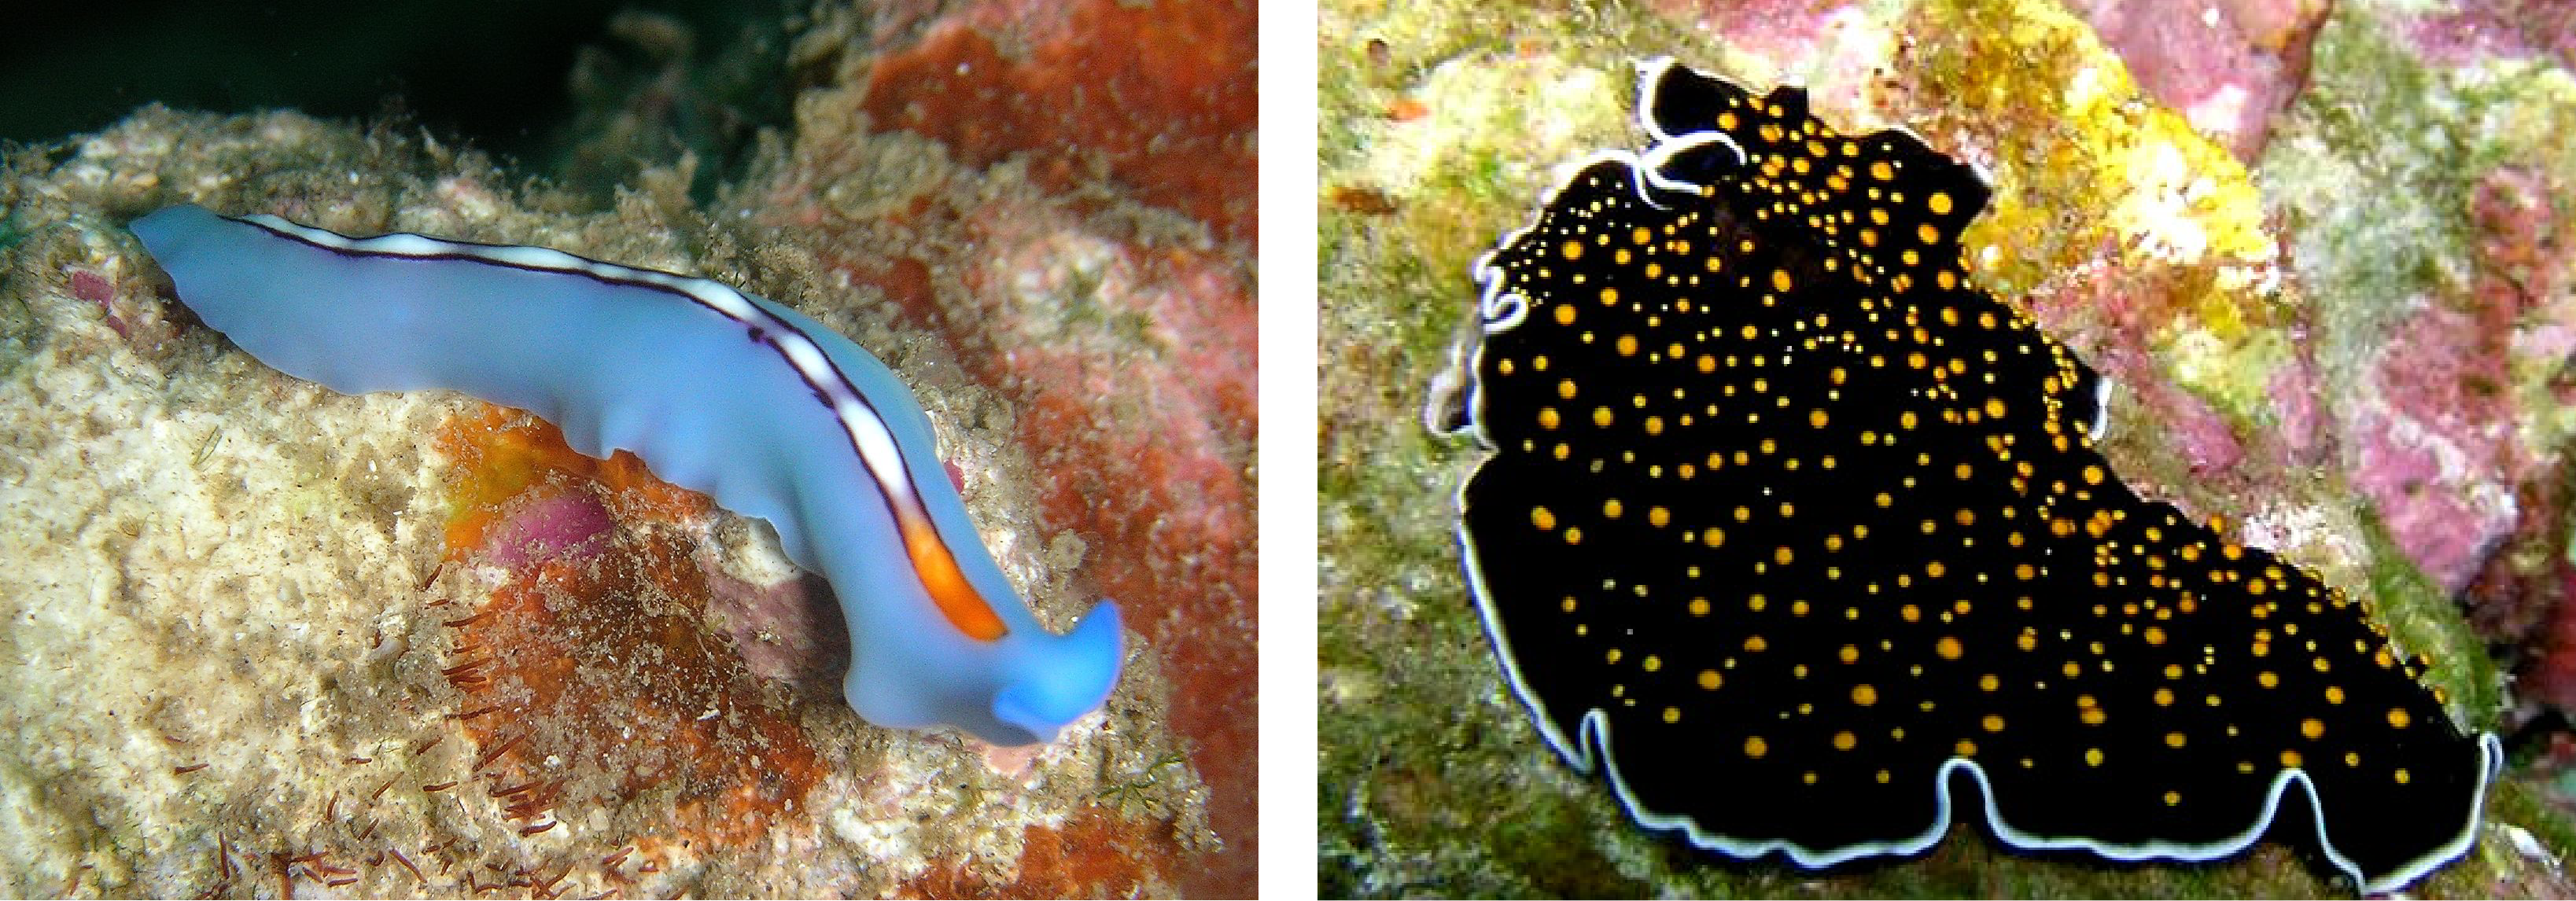 This image shows two flatworms with significant physical diversity.  One flatworm is brightly colored, and is long and tubular.  The other flatworm is broad, and flat, and a dark color.